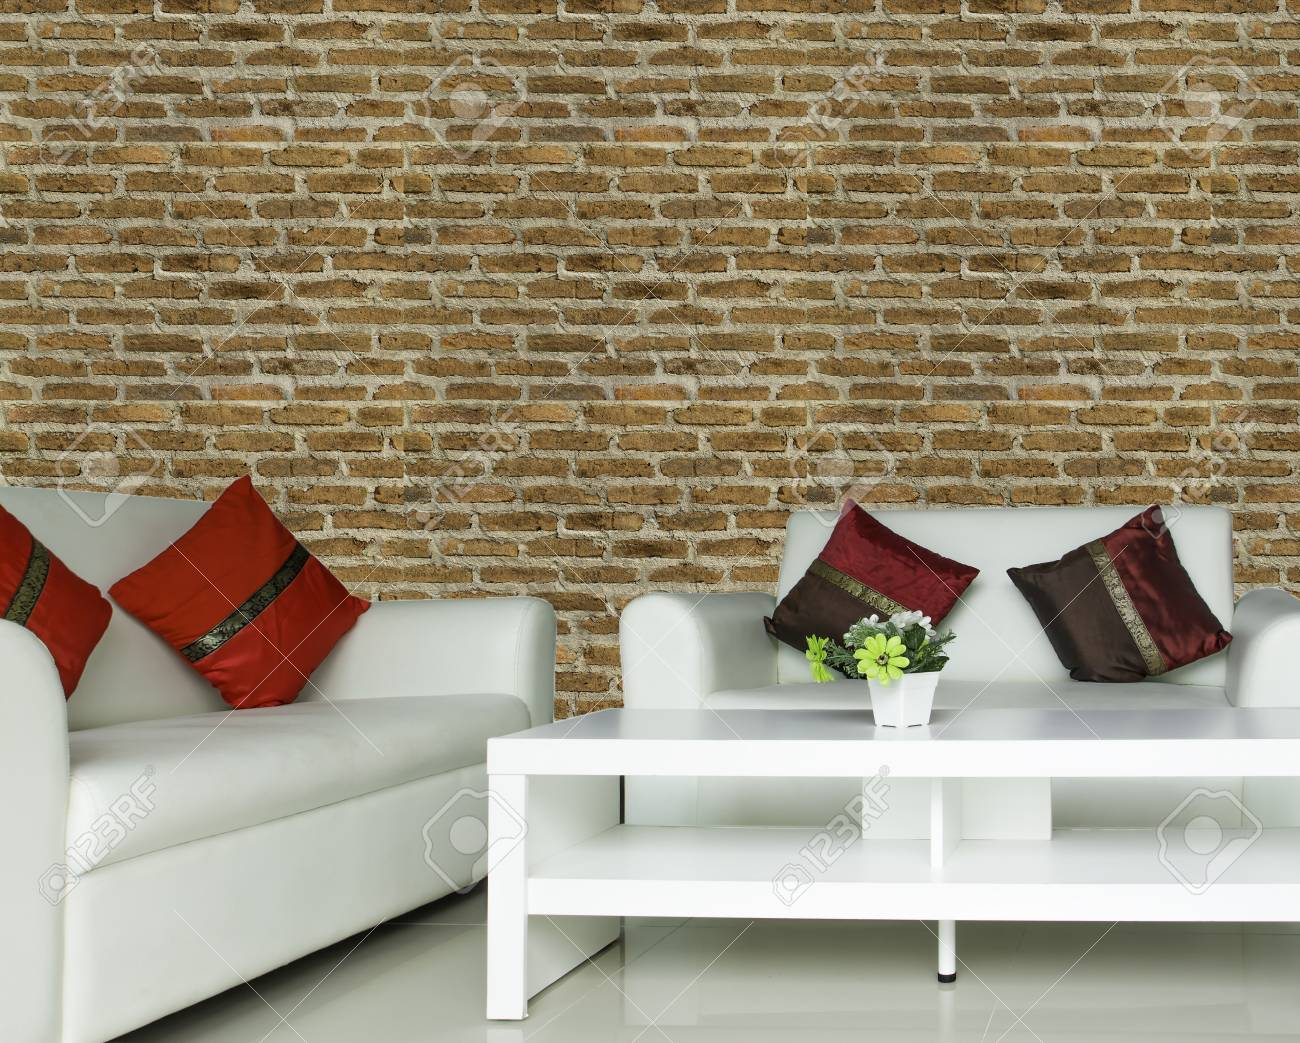 Many Color Cushions On White Sofa Set In Living Room With Brown